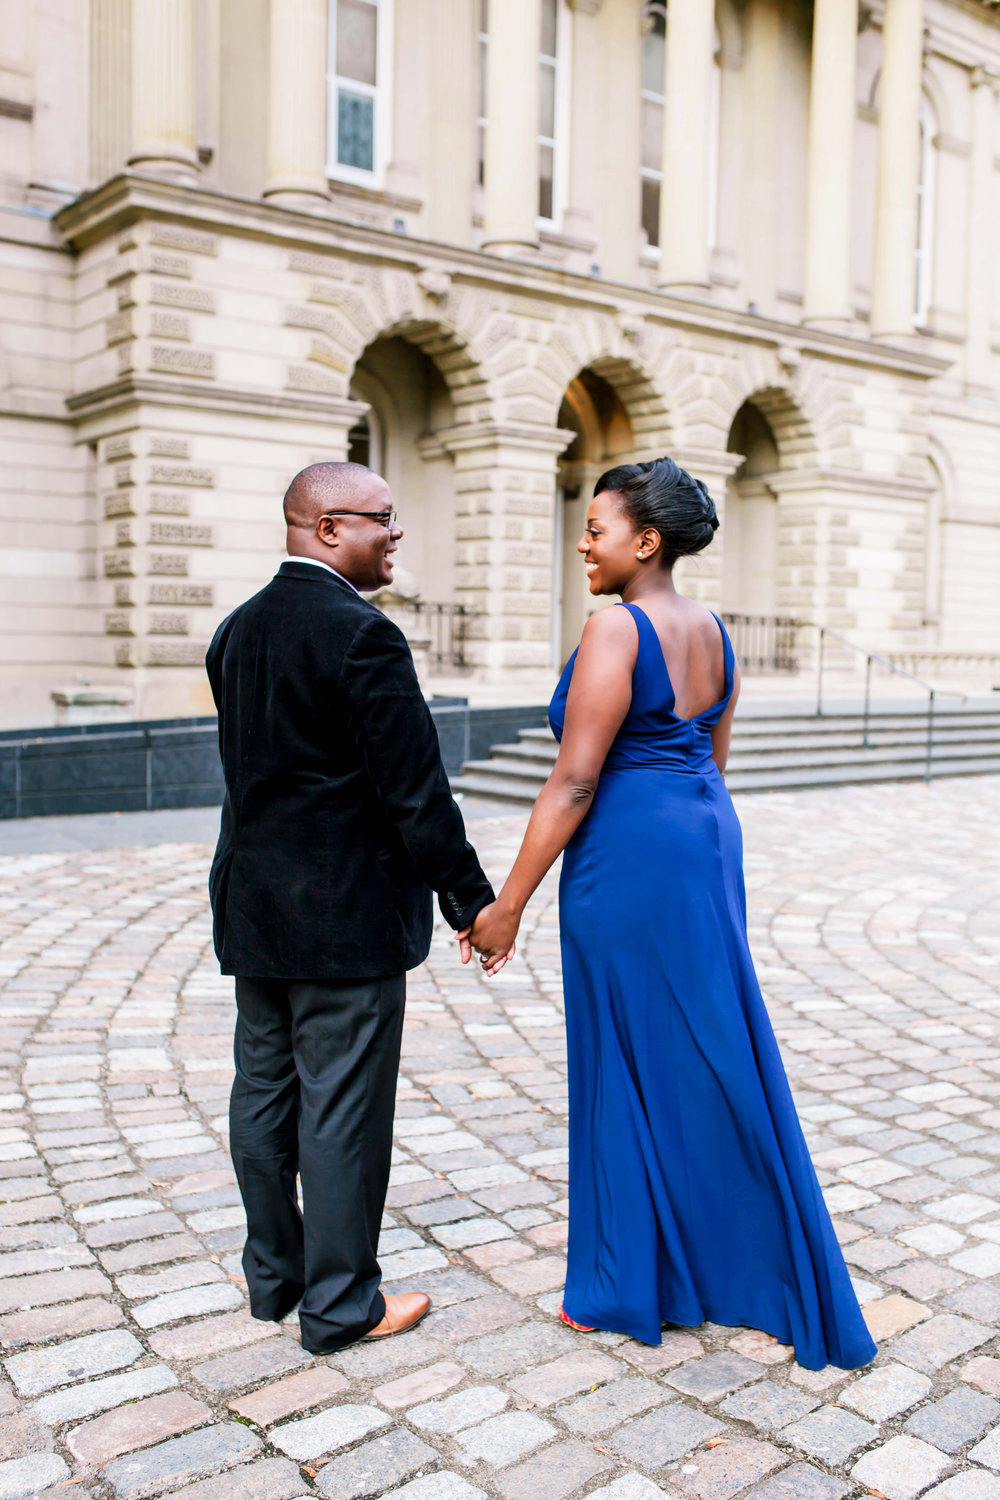 Engagement Photography Toronto Kenyan Kenya Osgoode Hall Toronto Downtown location Photographer Elegant photo ideas Ontario Canada African Black Couple Cobble Stone